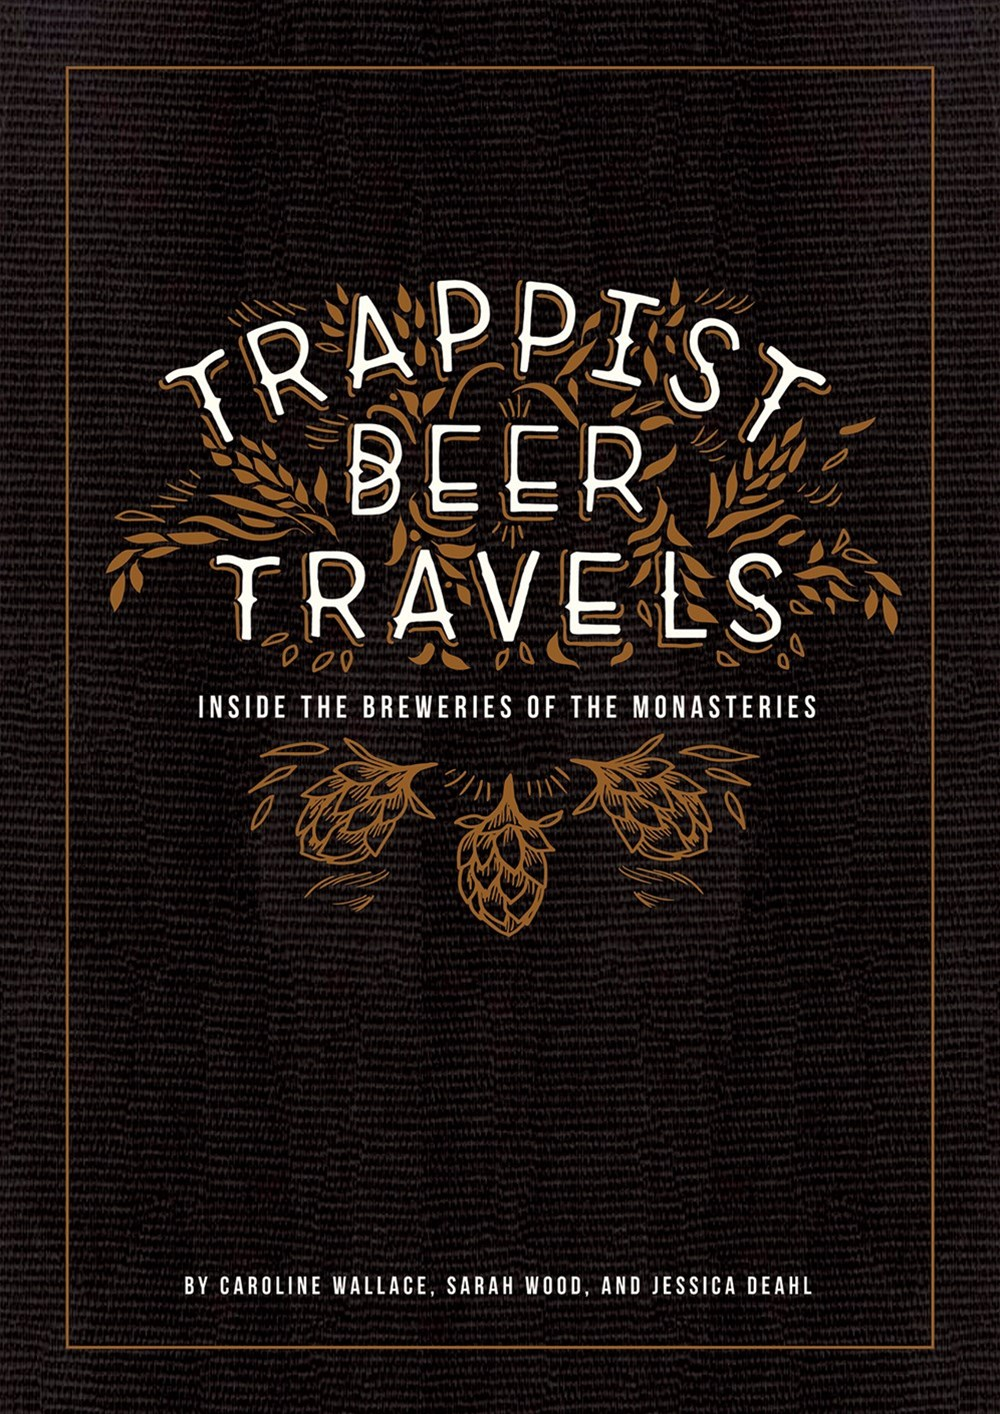 Trappist Beer Travels: Inside the Breweries of the Monasteries